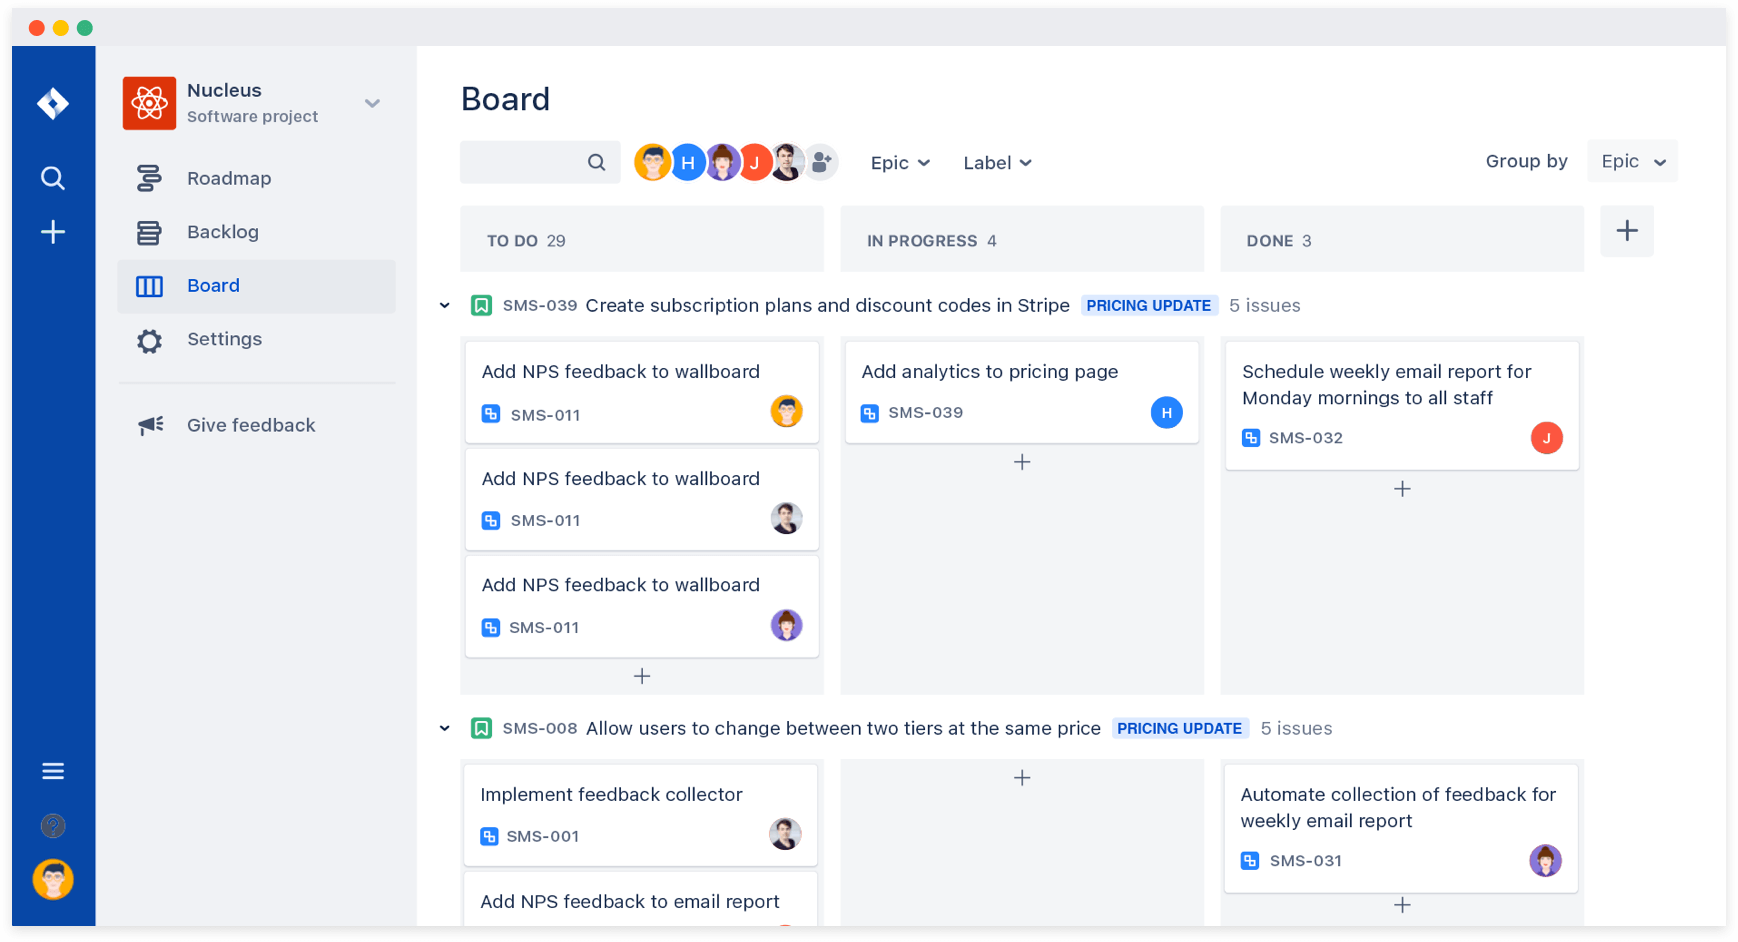 Enable everyone on the team to personalize their view of the board